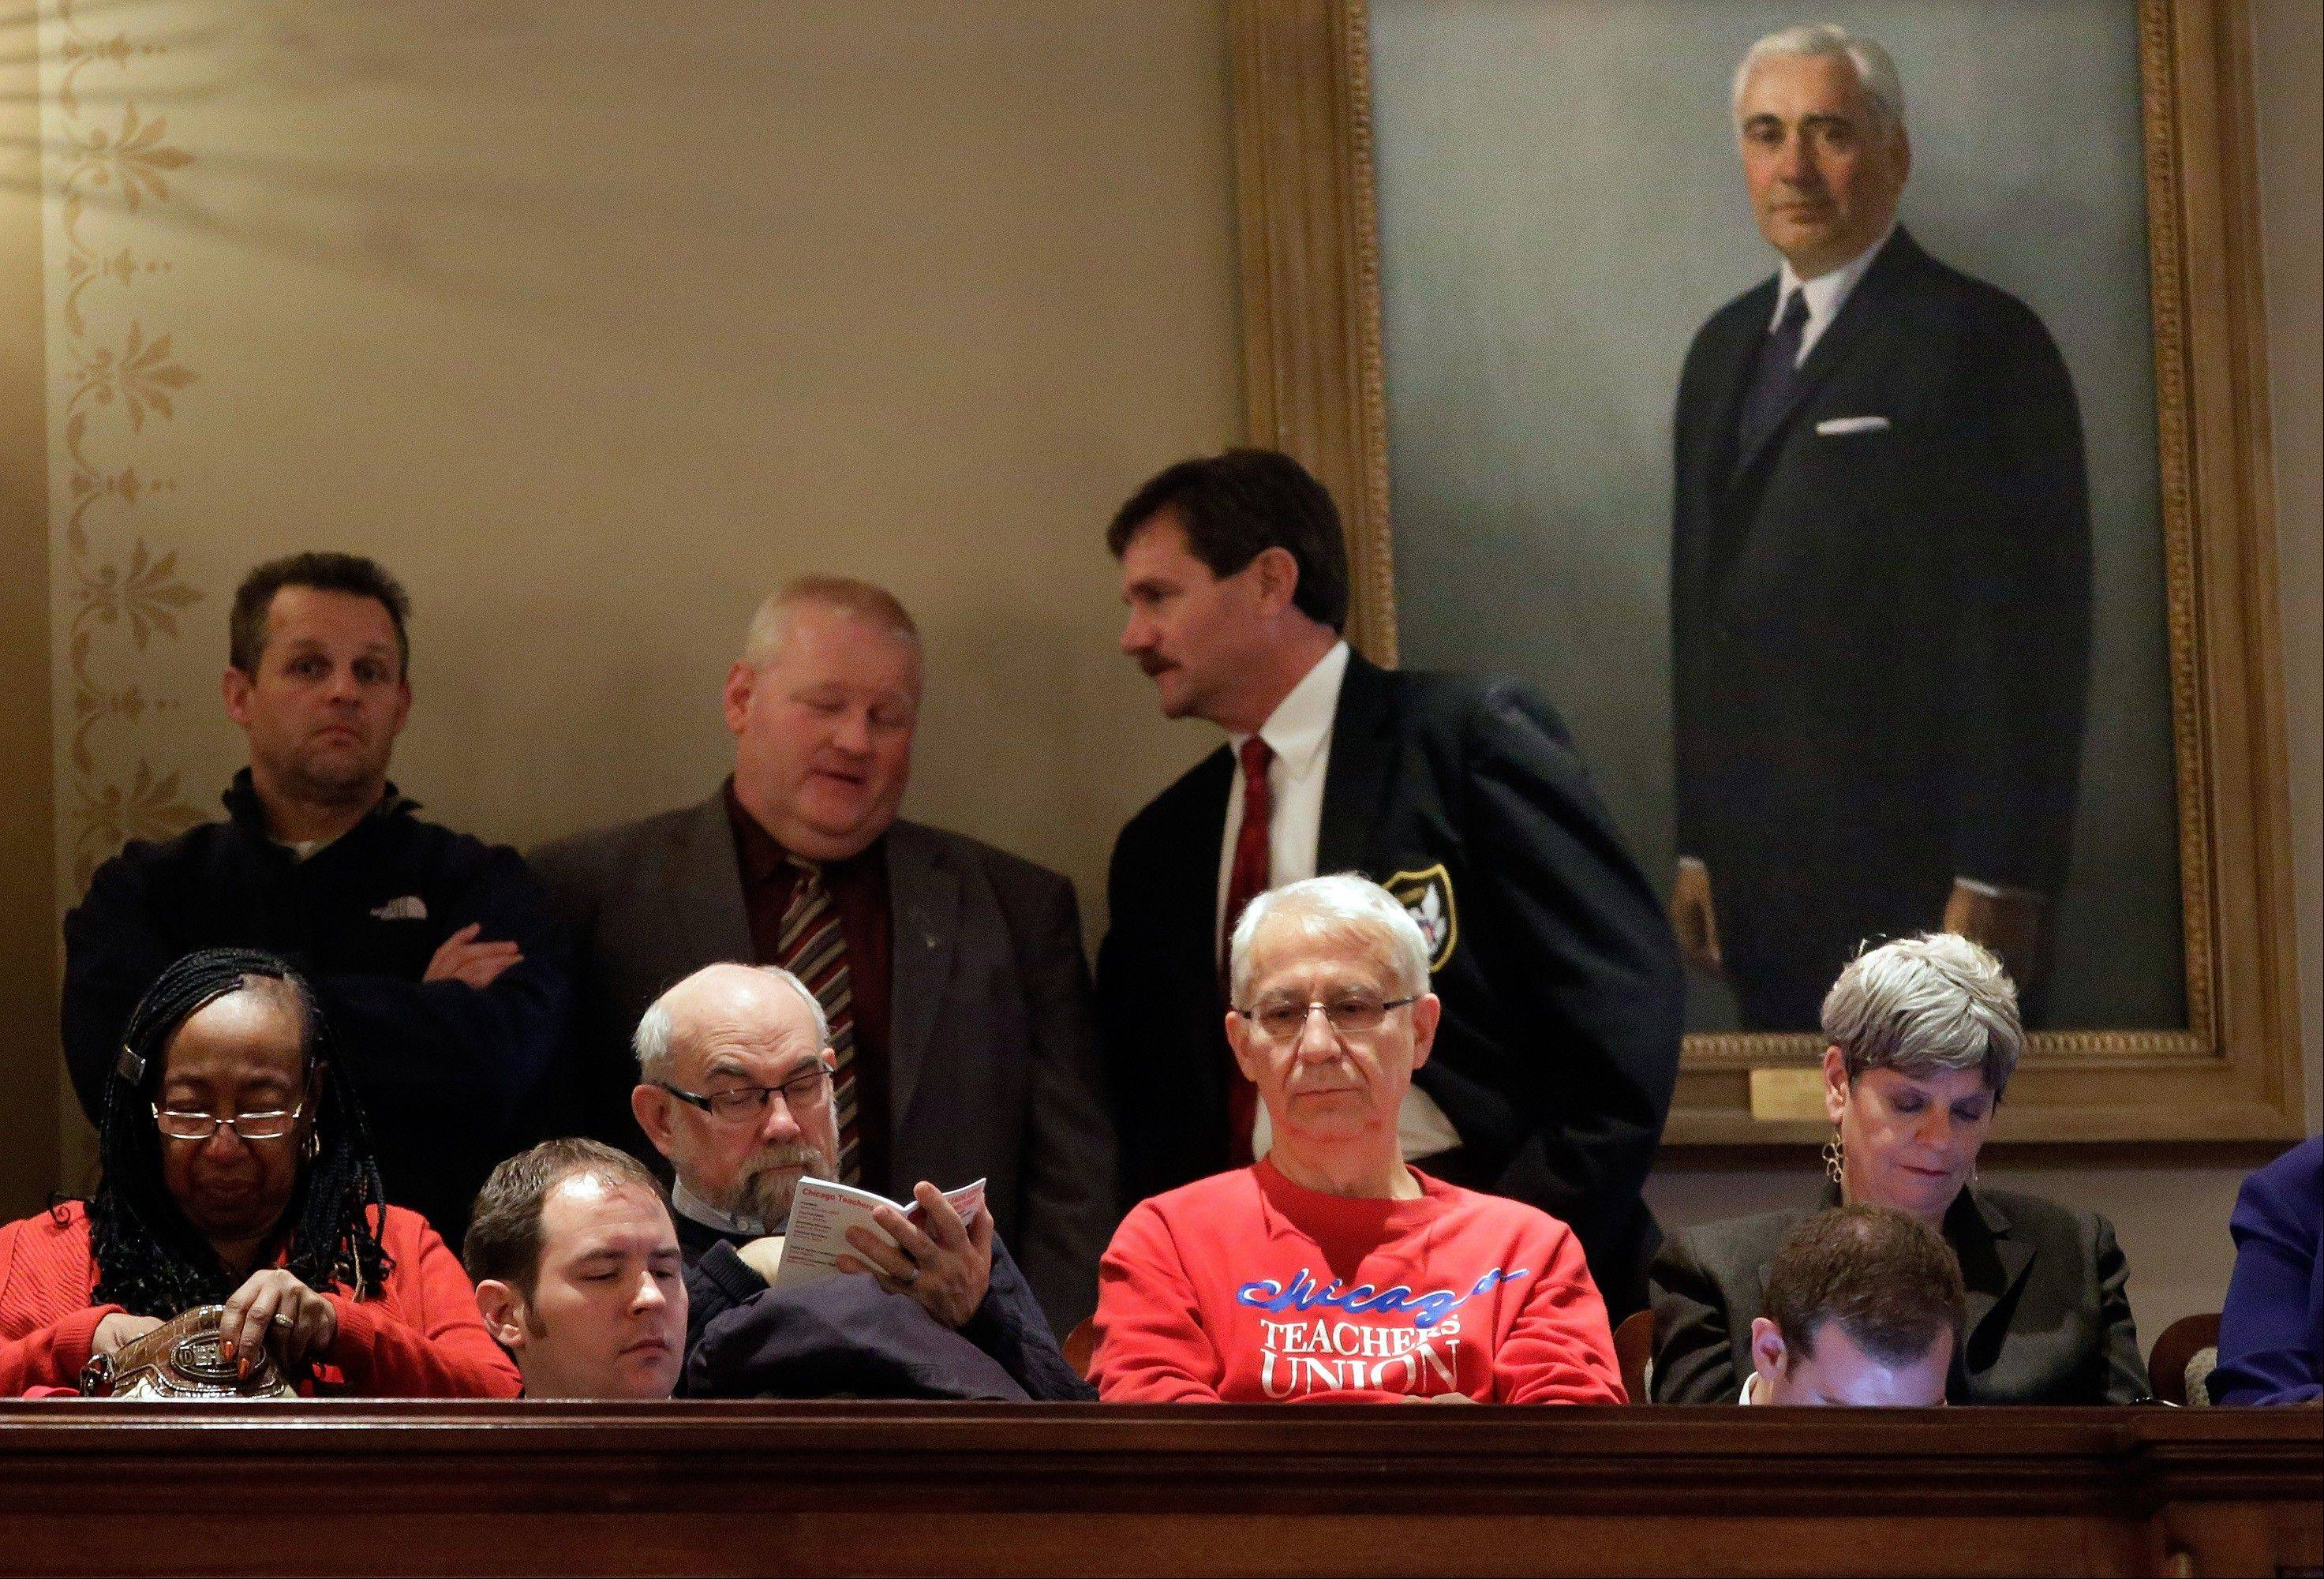 Opponents and supporters watch and listen from the gallery as Illinois House Speaker Michael Madigan argues pension legislation today on the House floor at the state Capitol.